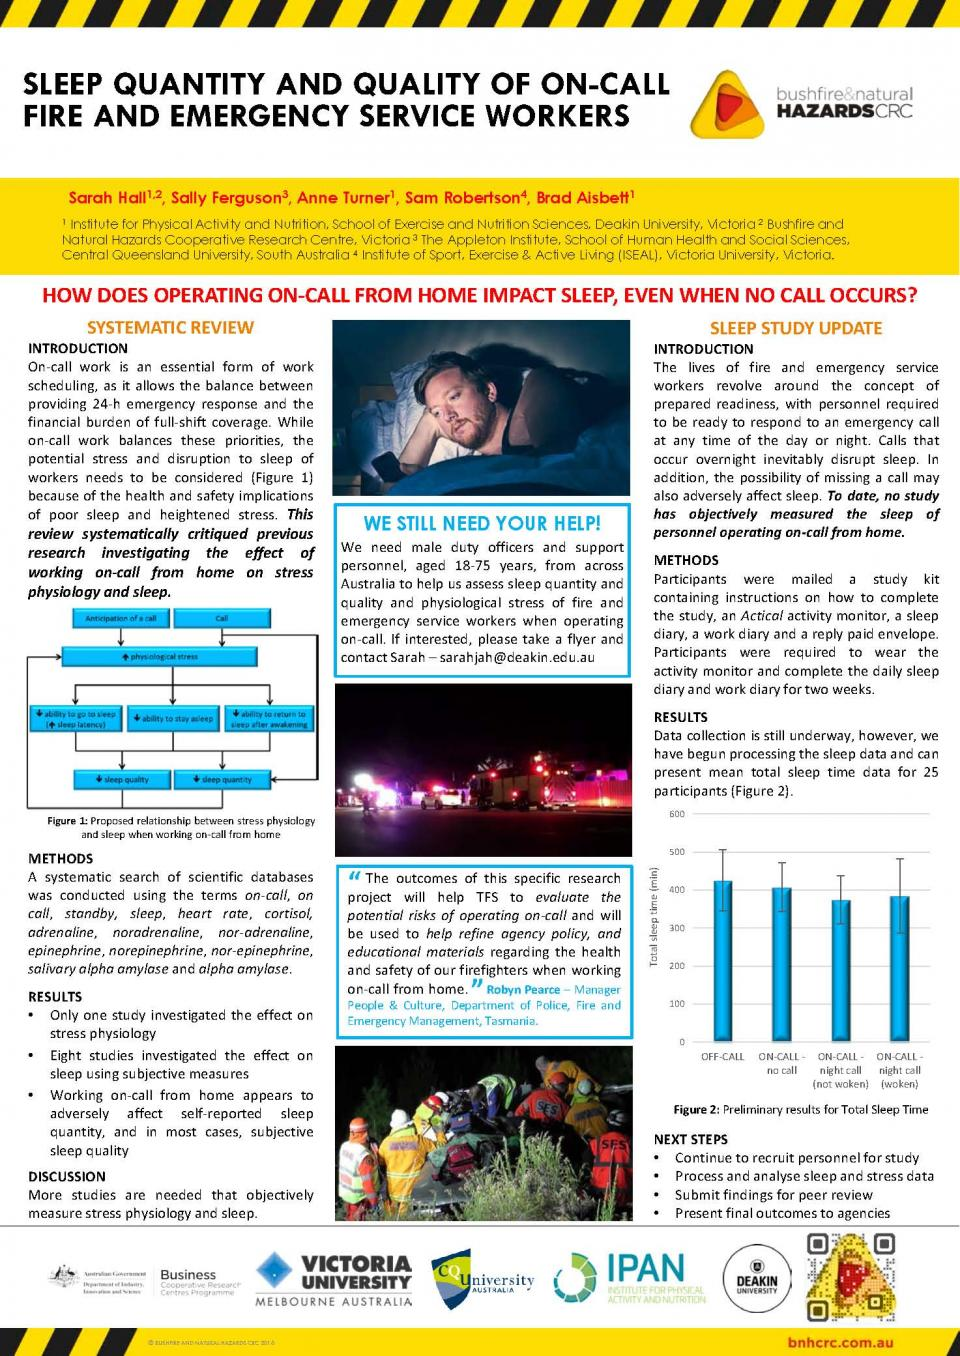 Sarah Hall Conference Poster 2016